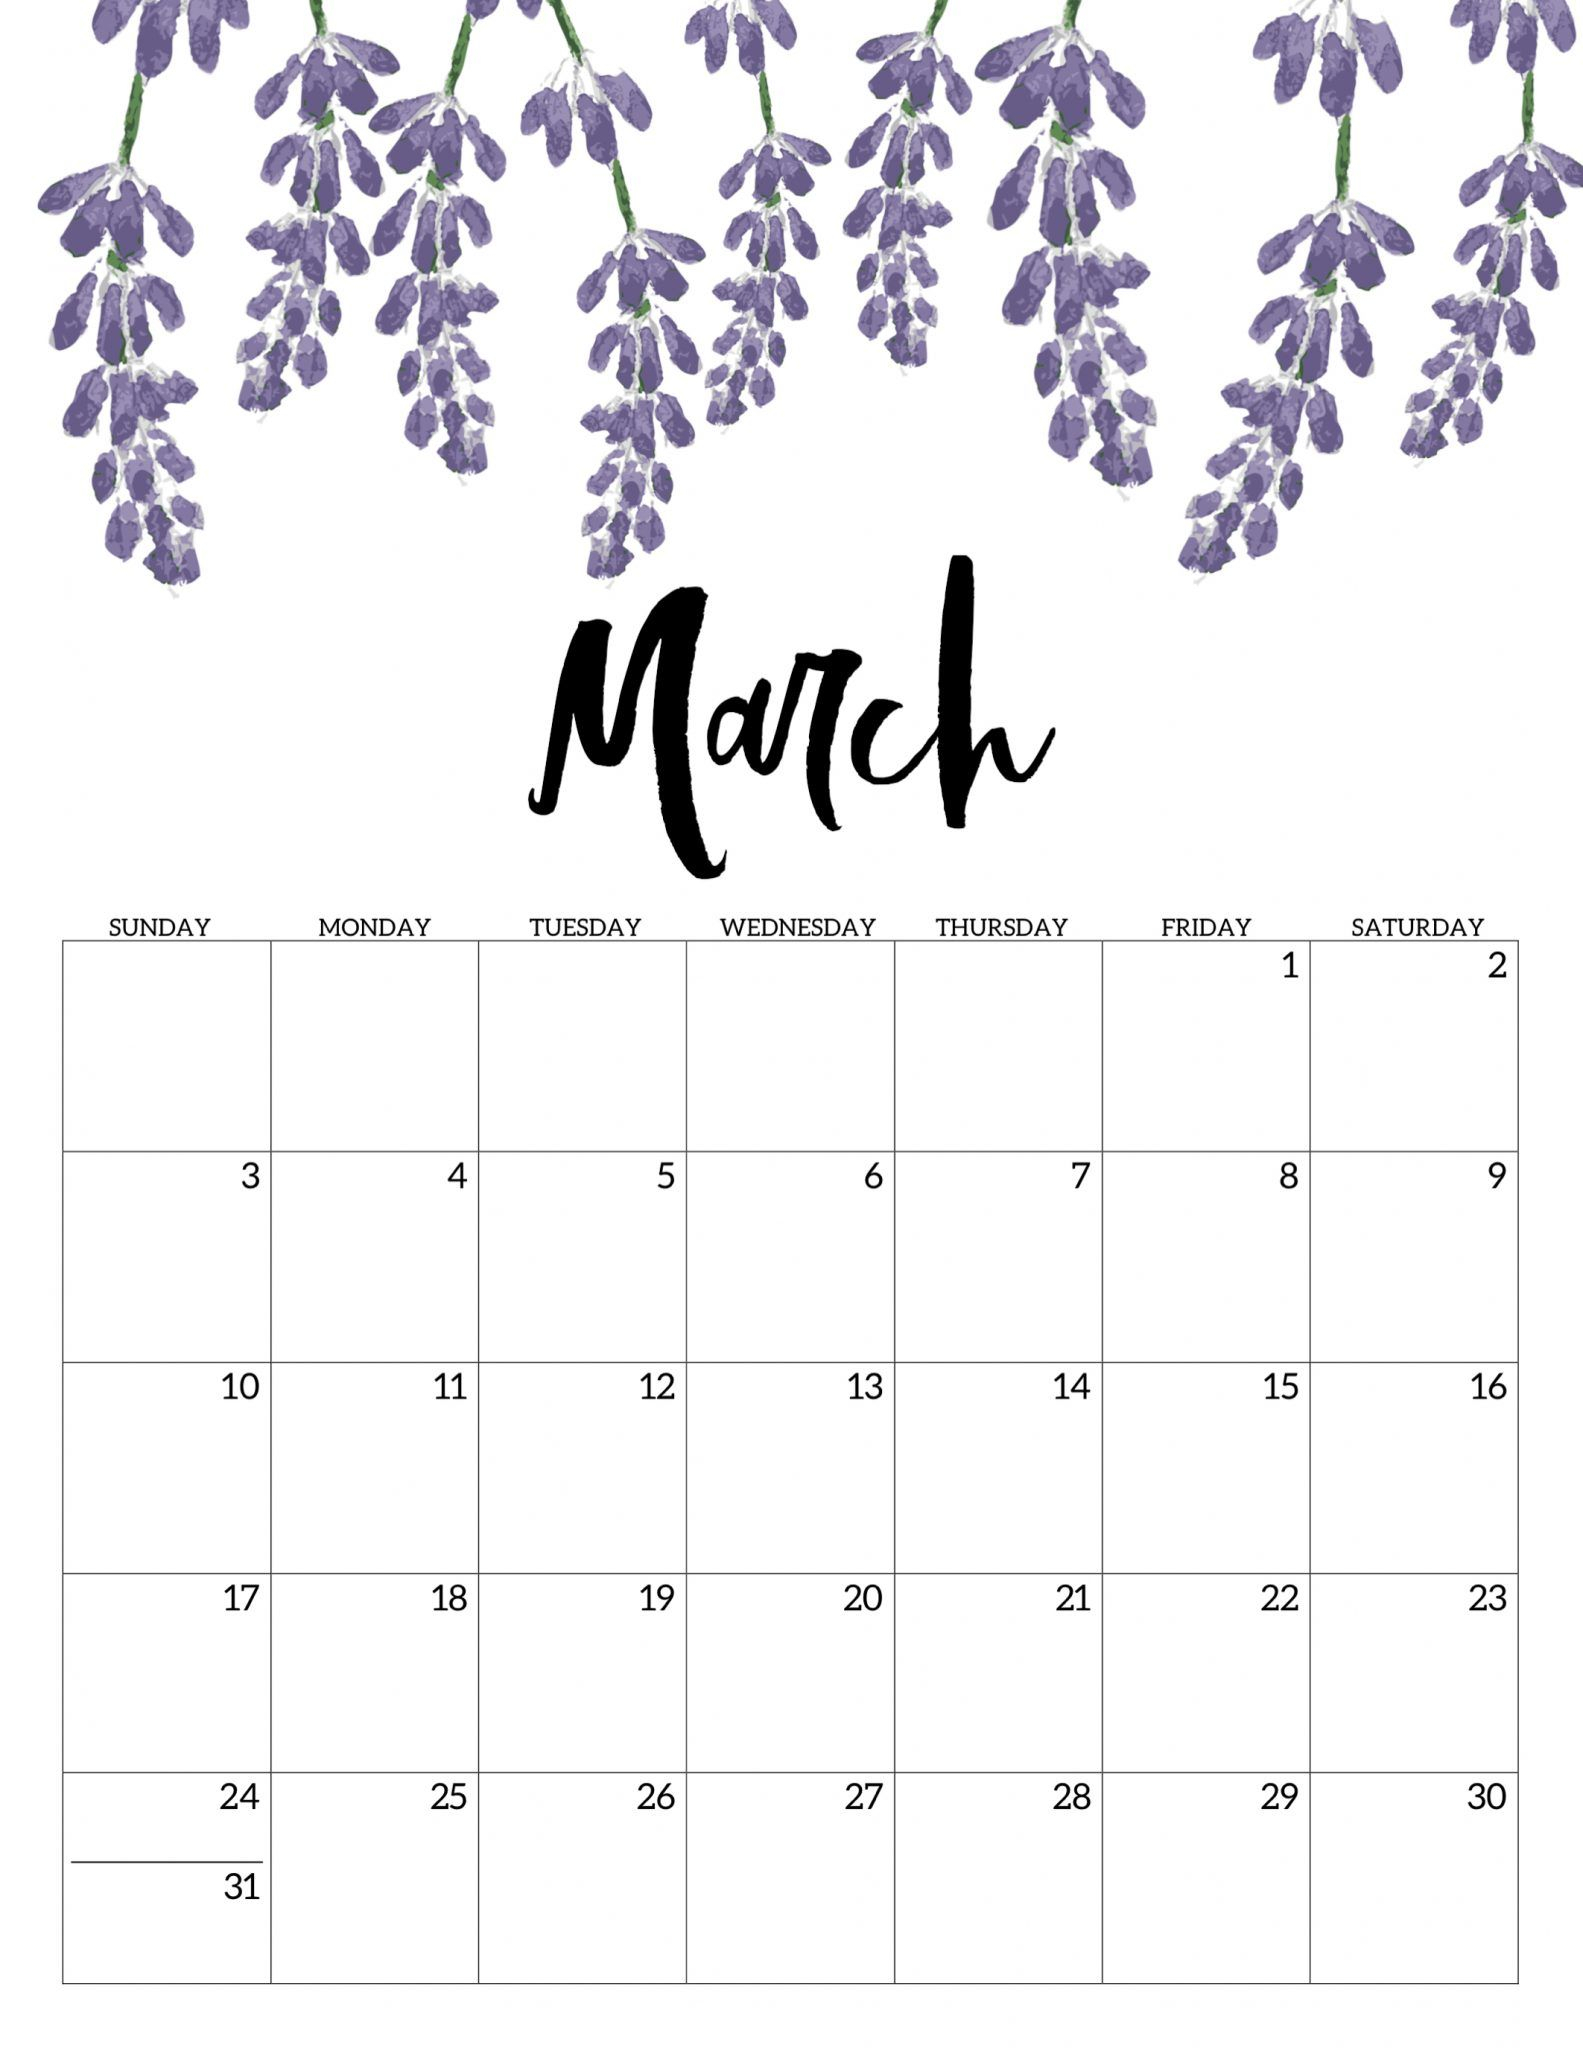 March 2019 Floral Calendar #march #march2019 #march2019Calendar in Pretty Calendar Template Printable March